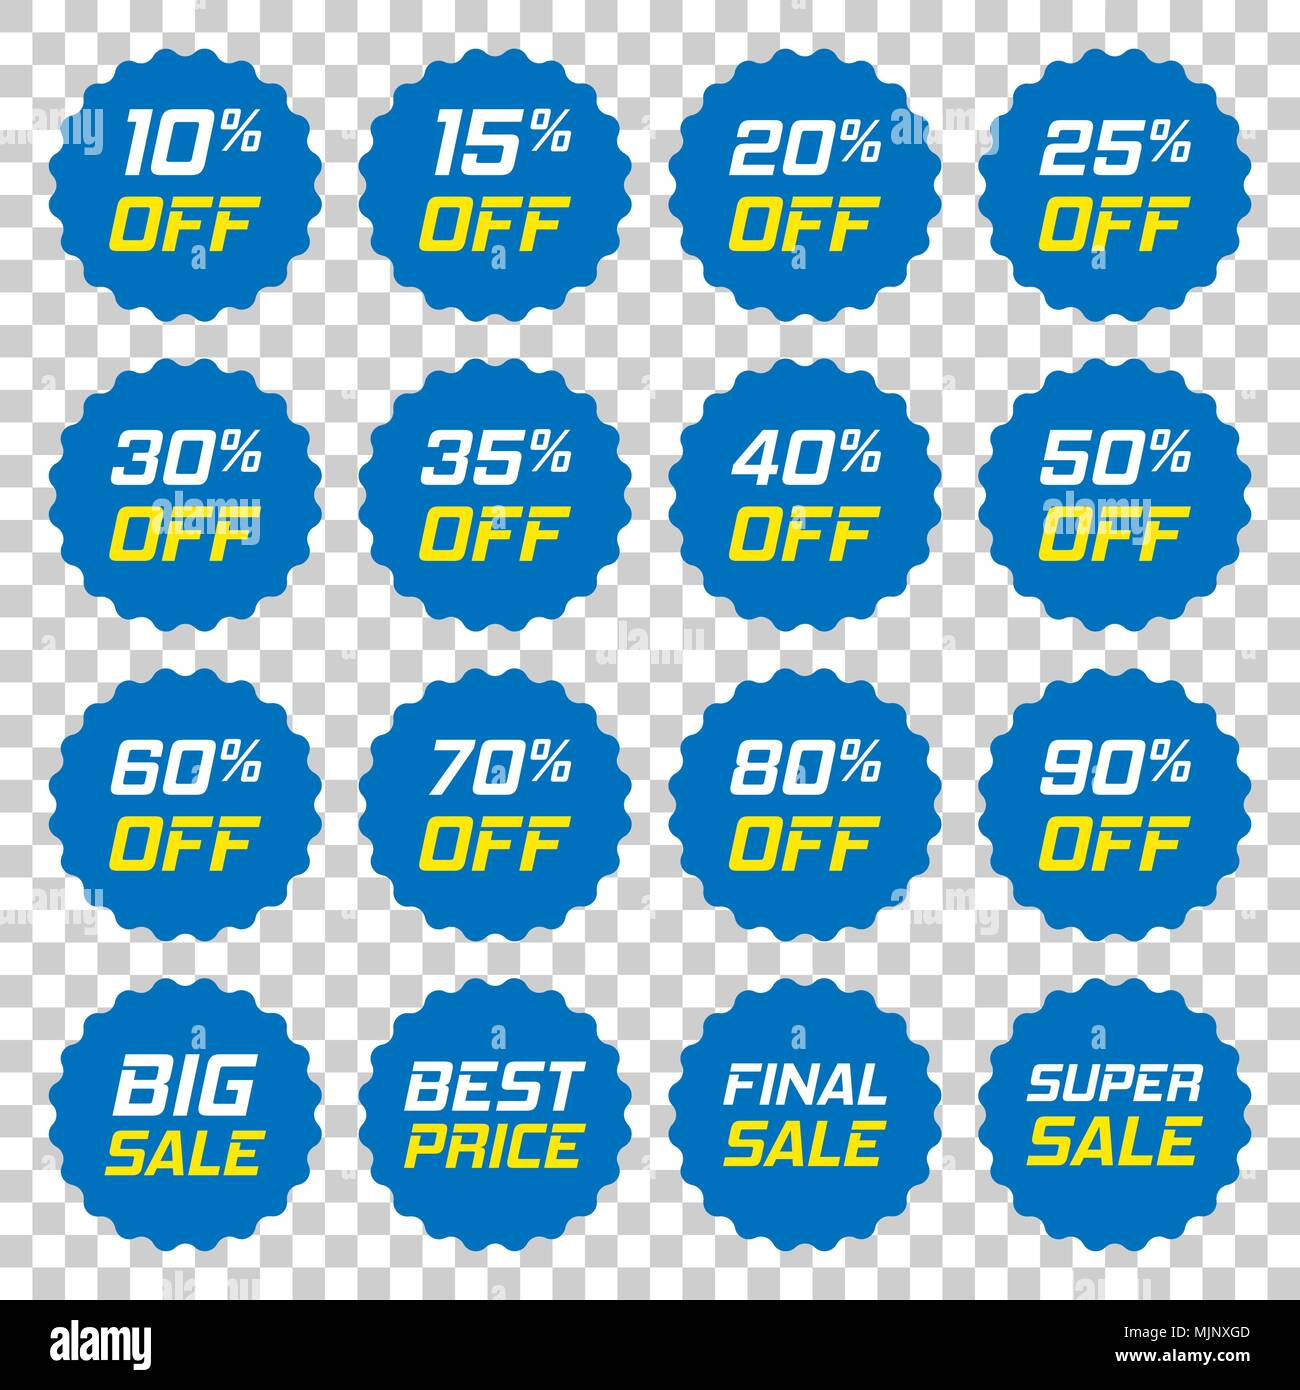 40*50 Discount Stickers Vector Icon In Flat Style Sale Tag Sign